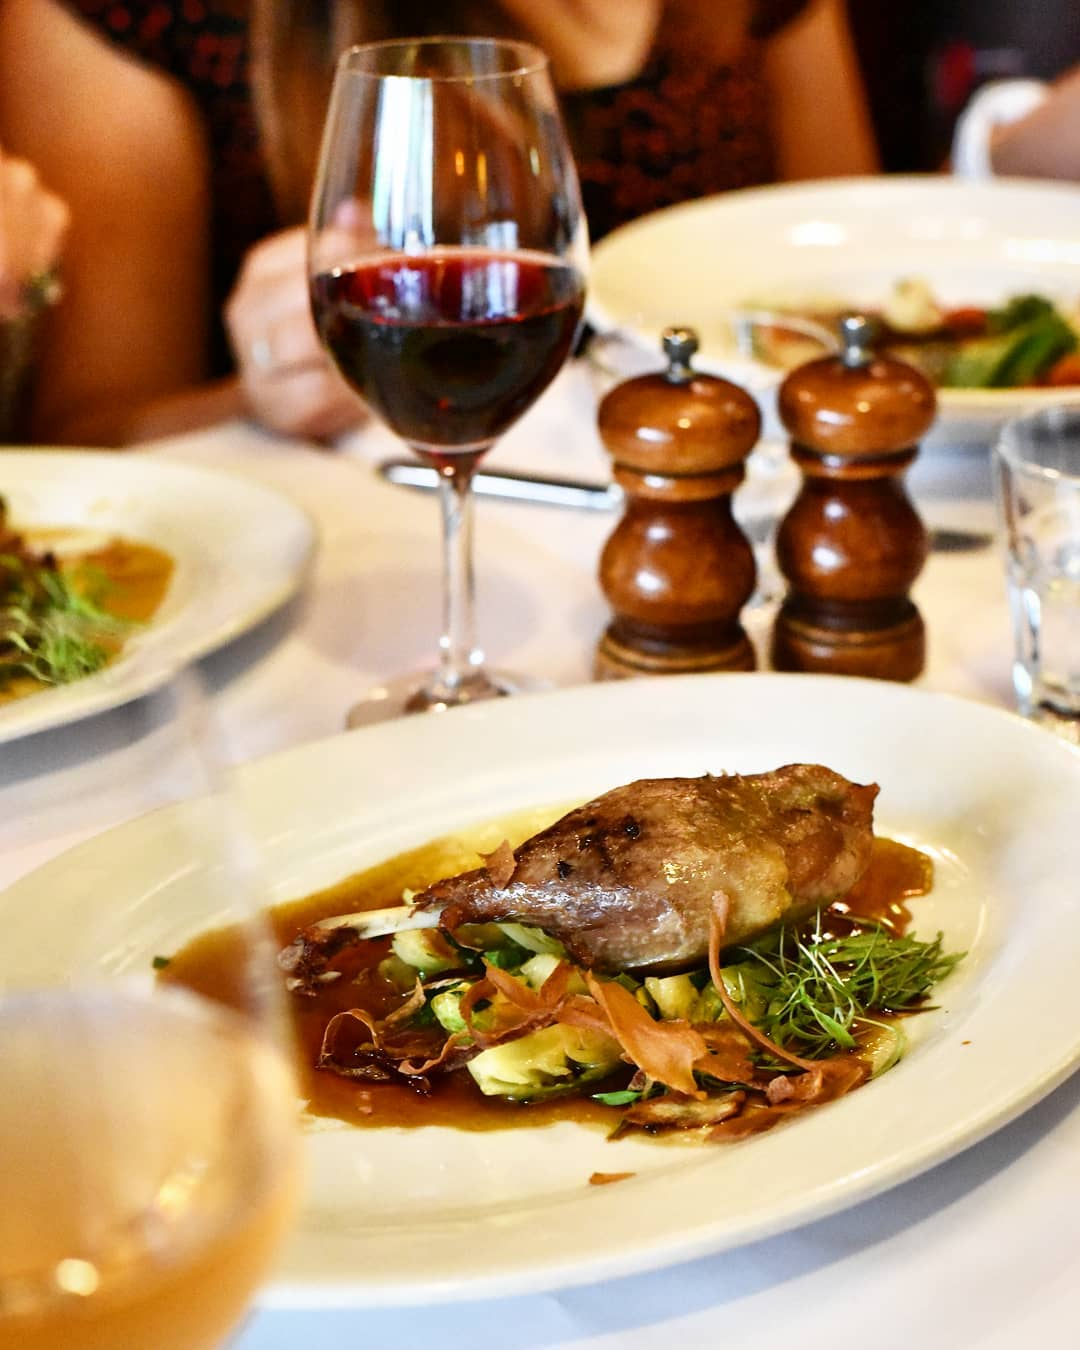 Confit duck leg on a bed of vegetables with jus on a table with wine at Bistrot D'Orsay French restaurant